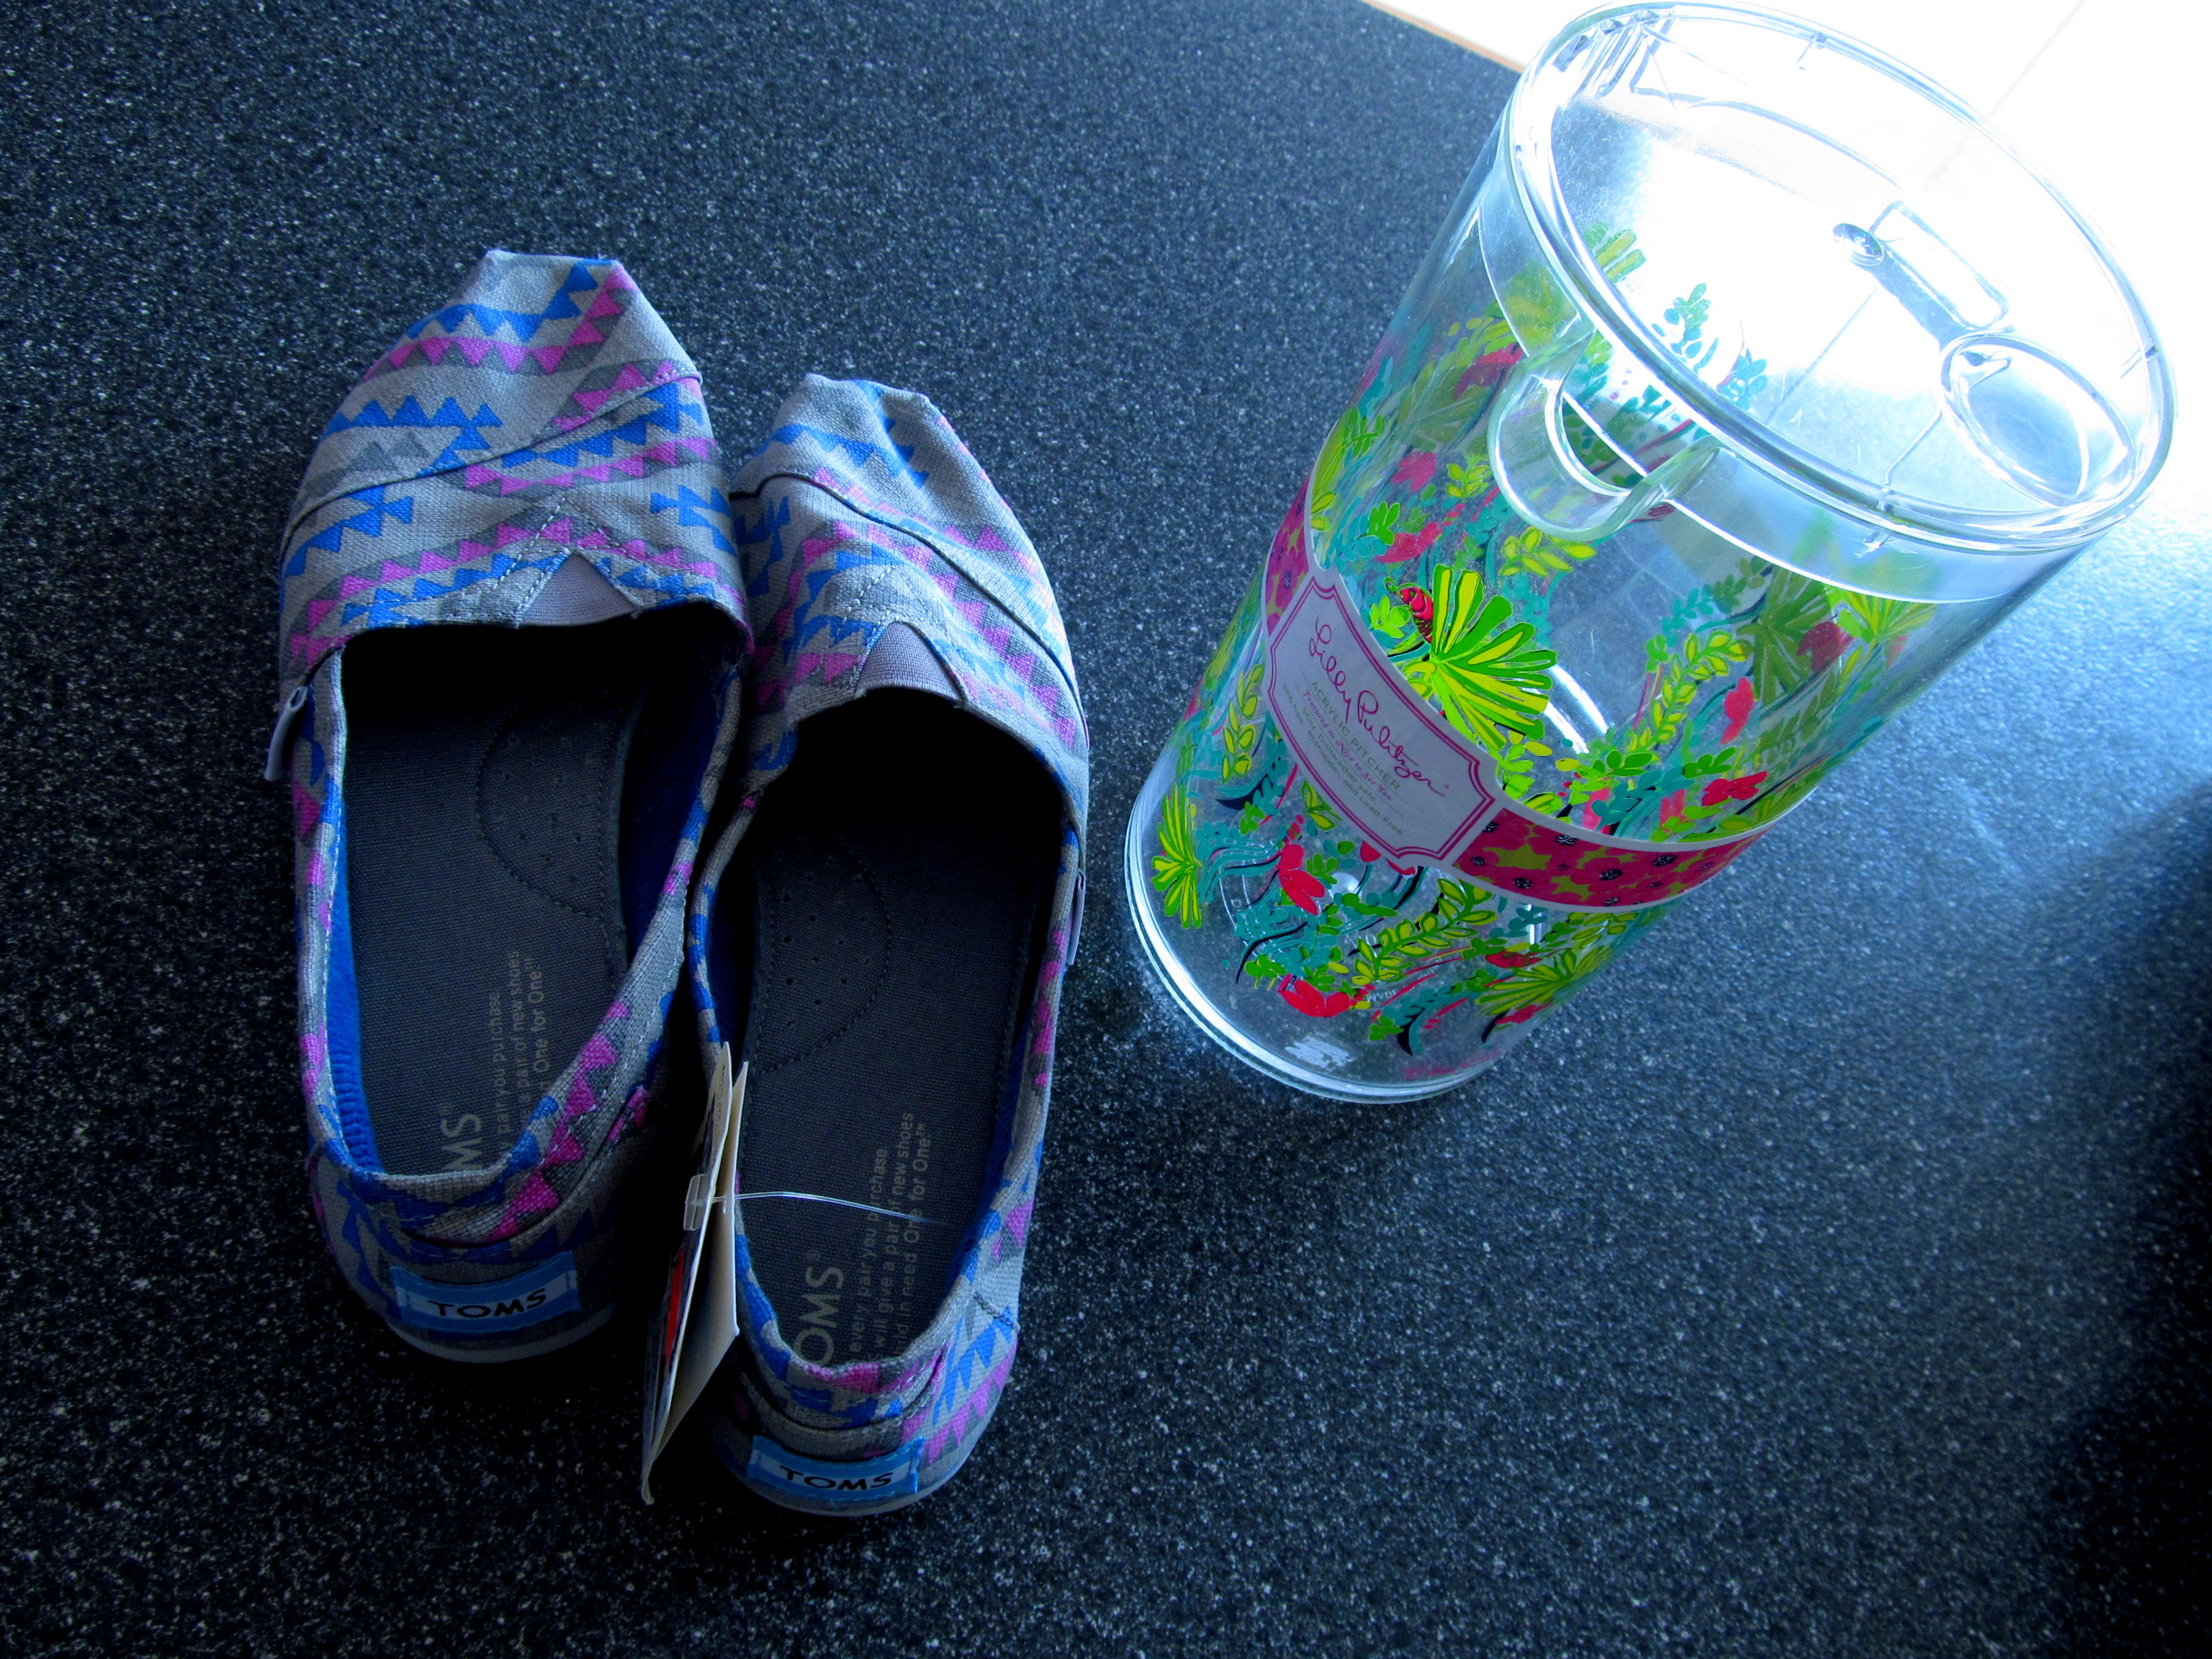 Toms (on SALE) from Urban Outfitters, and an on-sale Lilly Pulitzer pitcher for my sis!